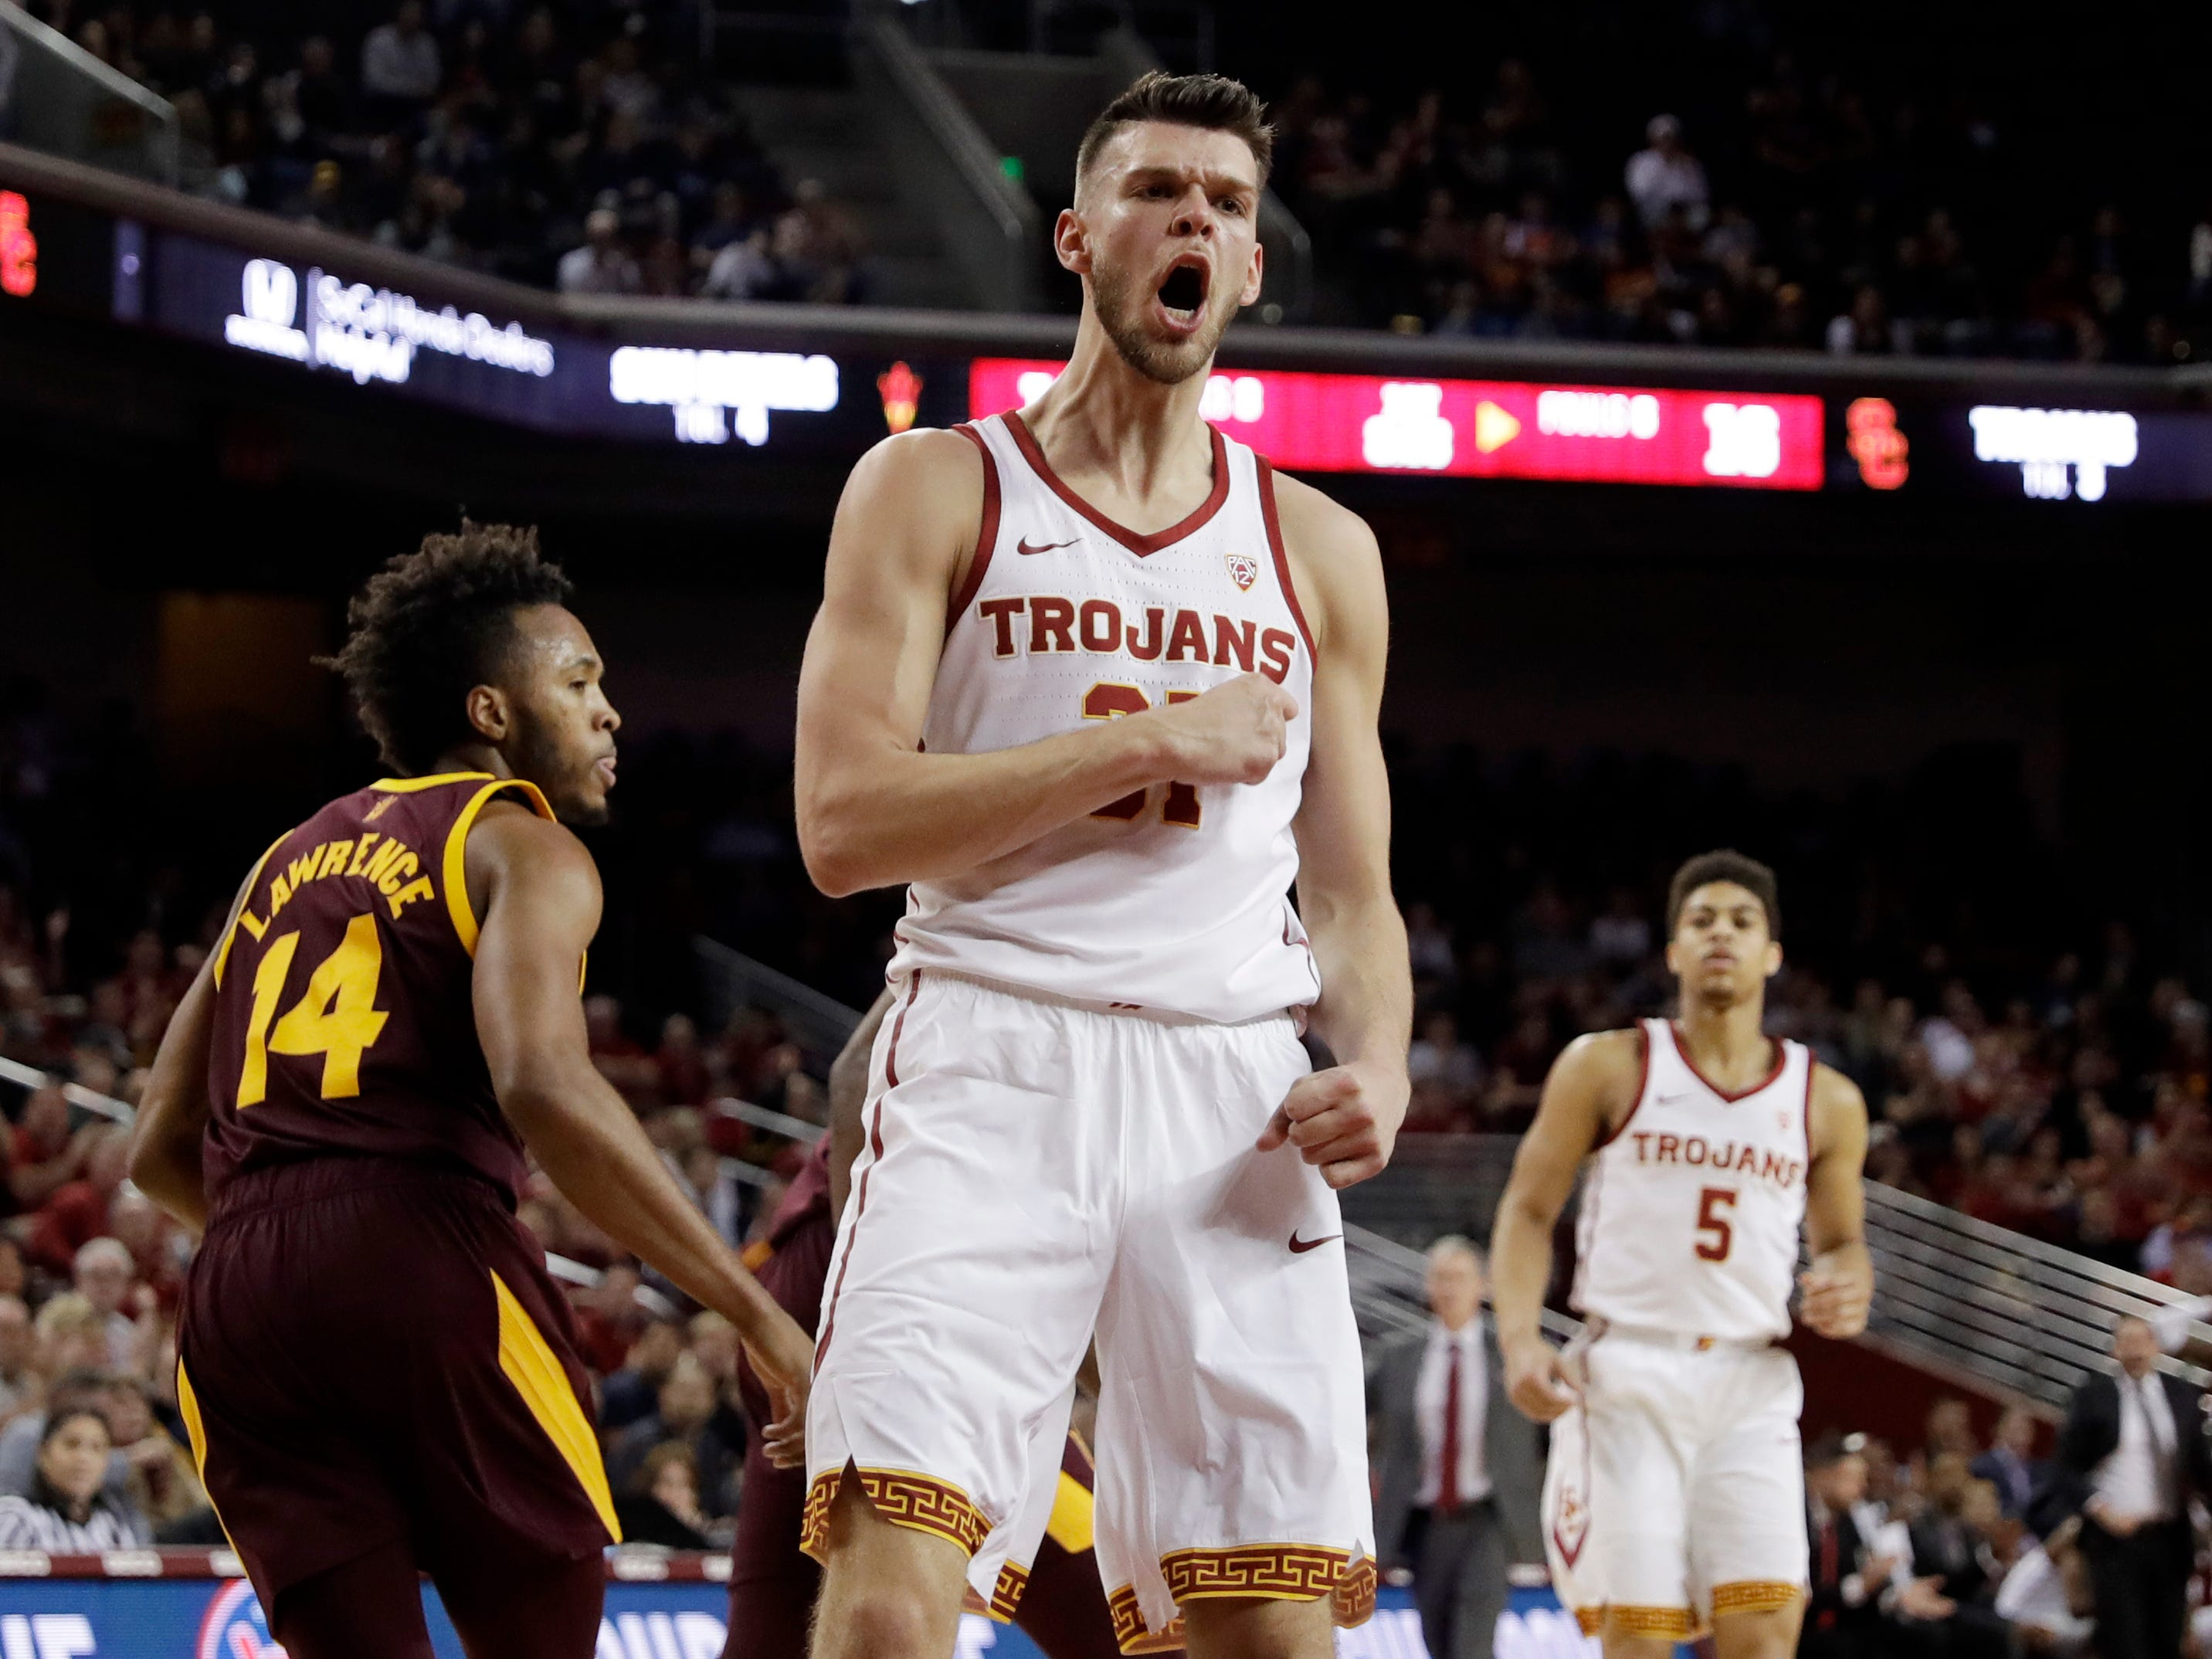 Southern California forward Nick Rakocevic, center, reacts after scoring against Arizona State during the first half of an NCAA college basketball game Saturday, Jan. 26, 2019, in Los Angeles.